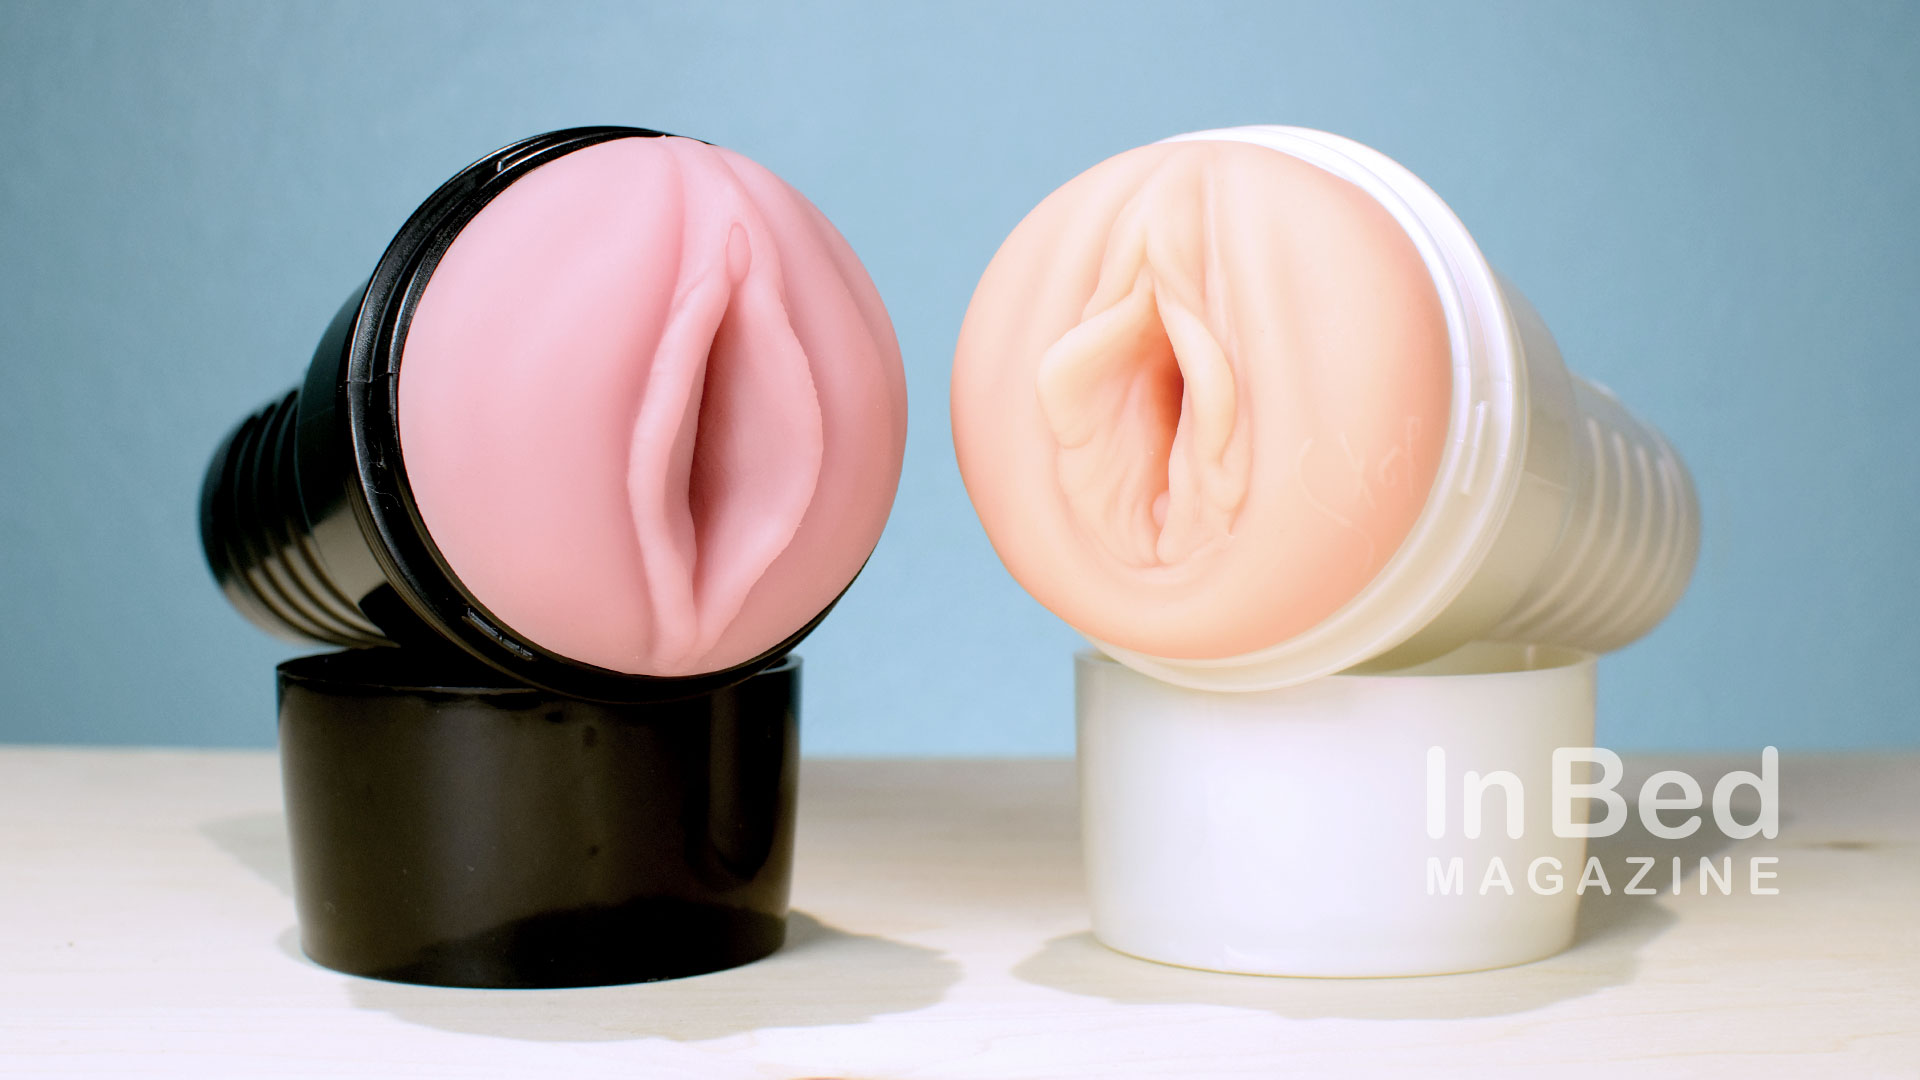 Fleshlight Concealable